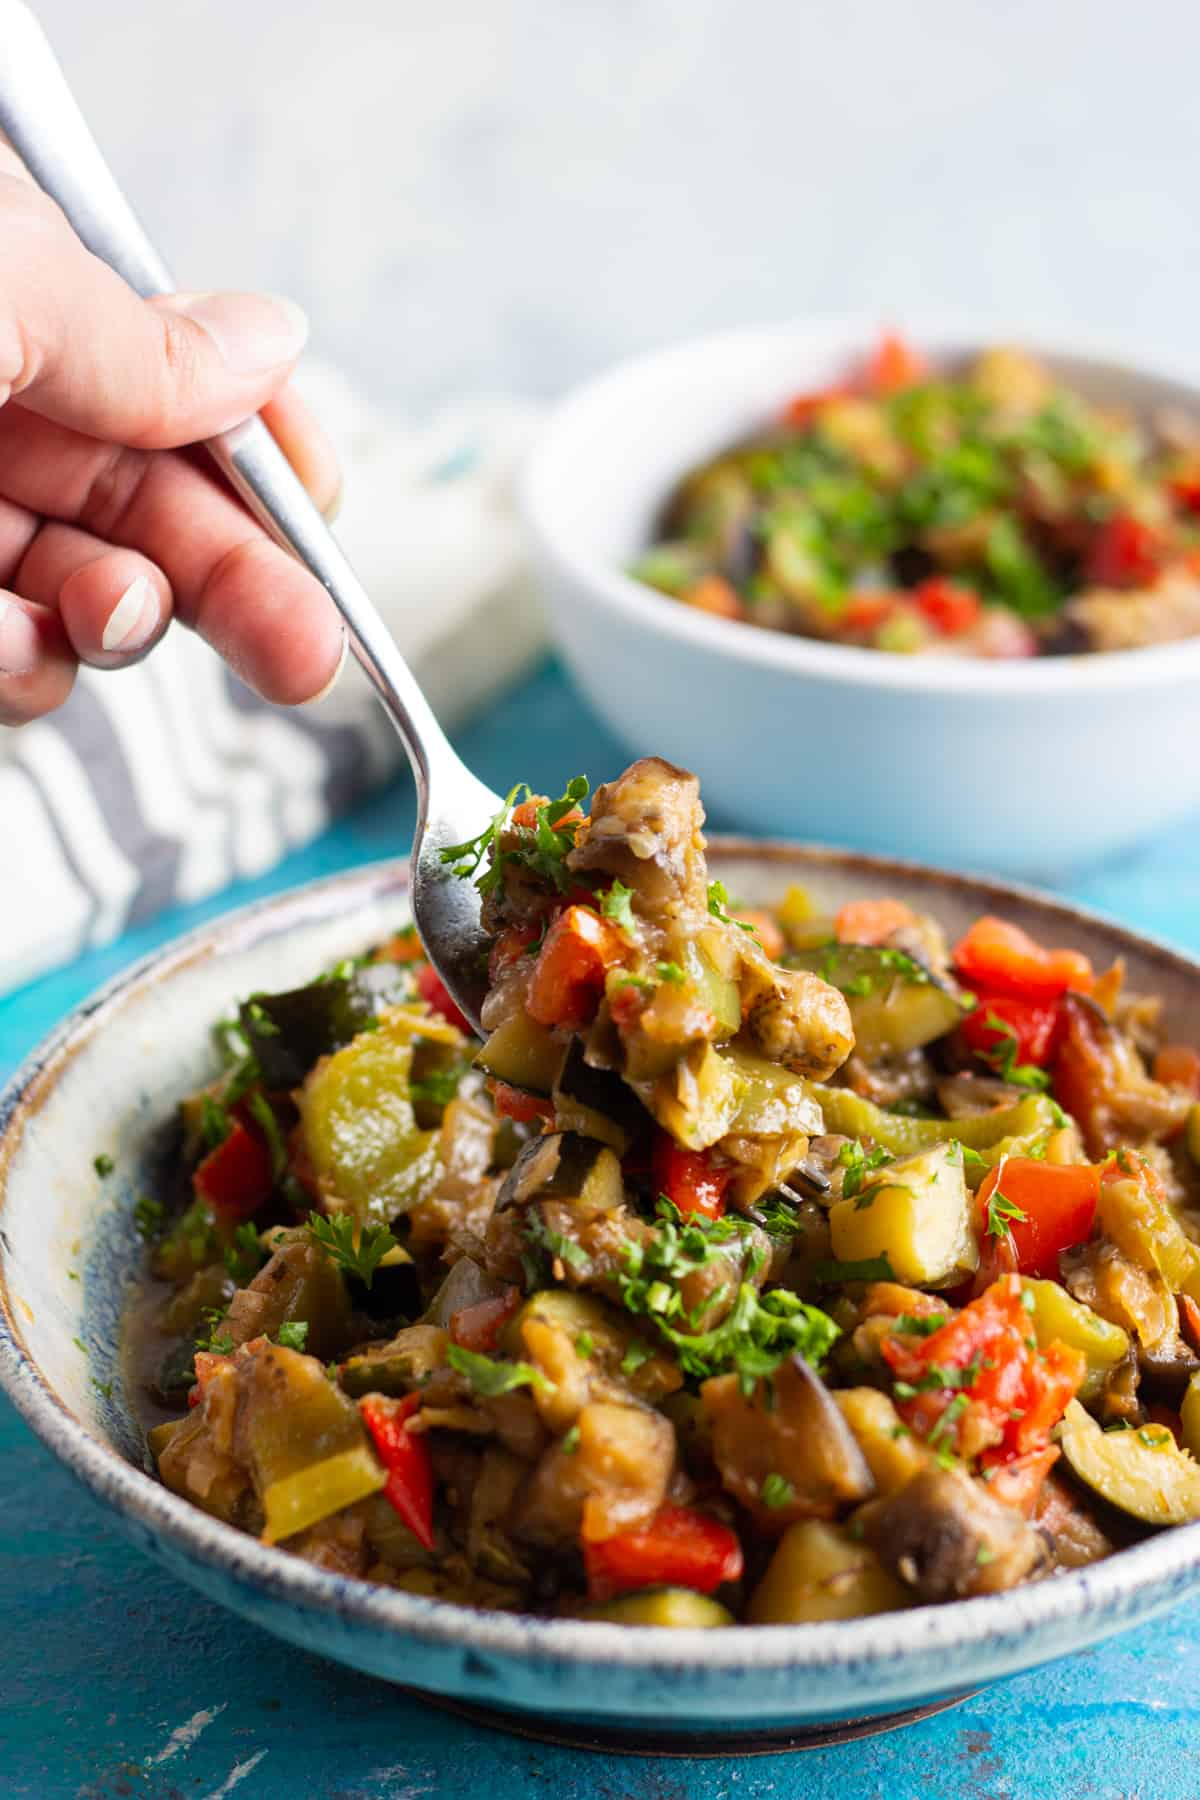 Mediterranean stew made with summer vegetables. Served in a bowl and with a fork.